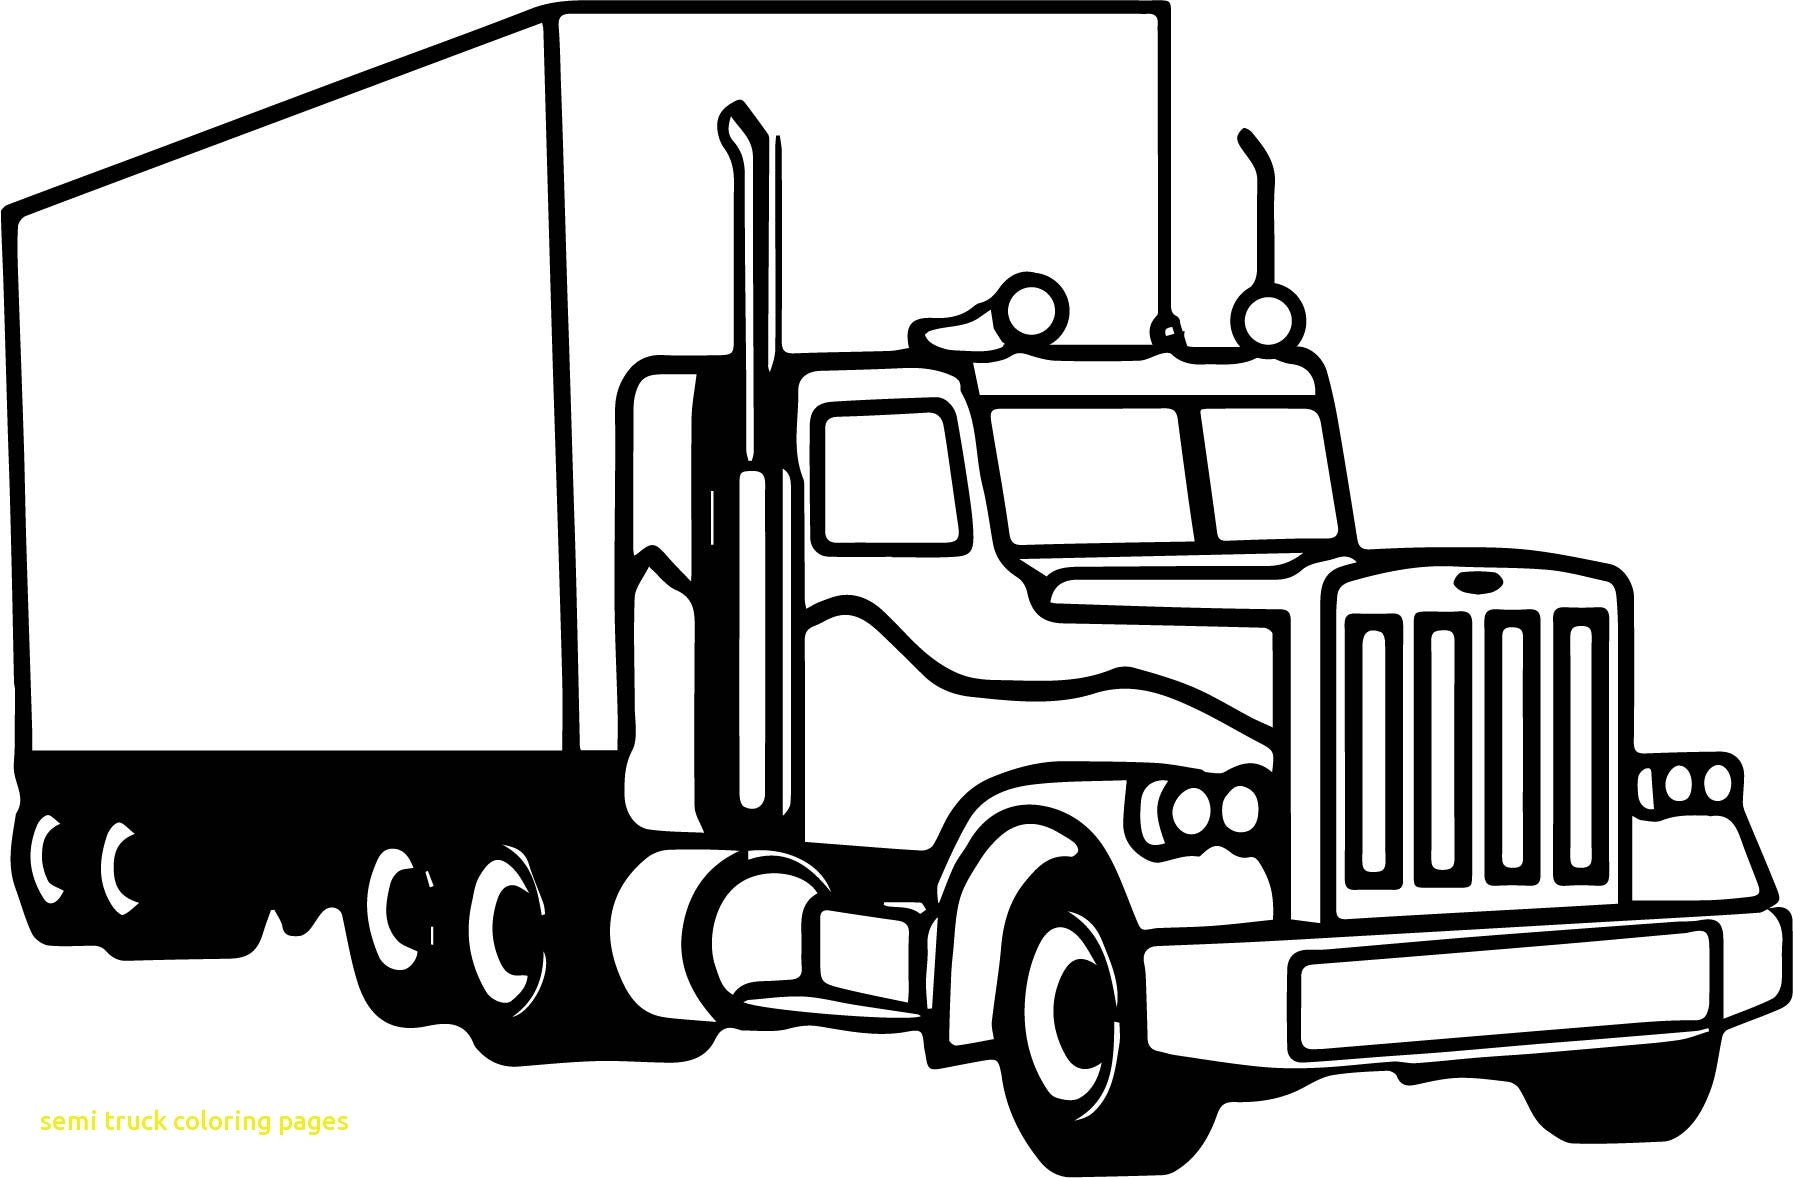 Truck Coloring Pages Gallery | Free Coloring Sheets